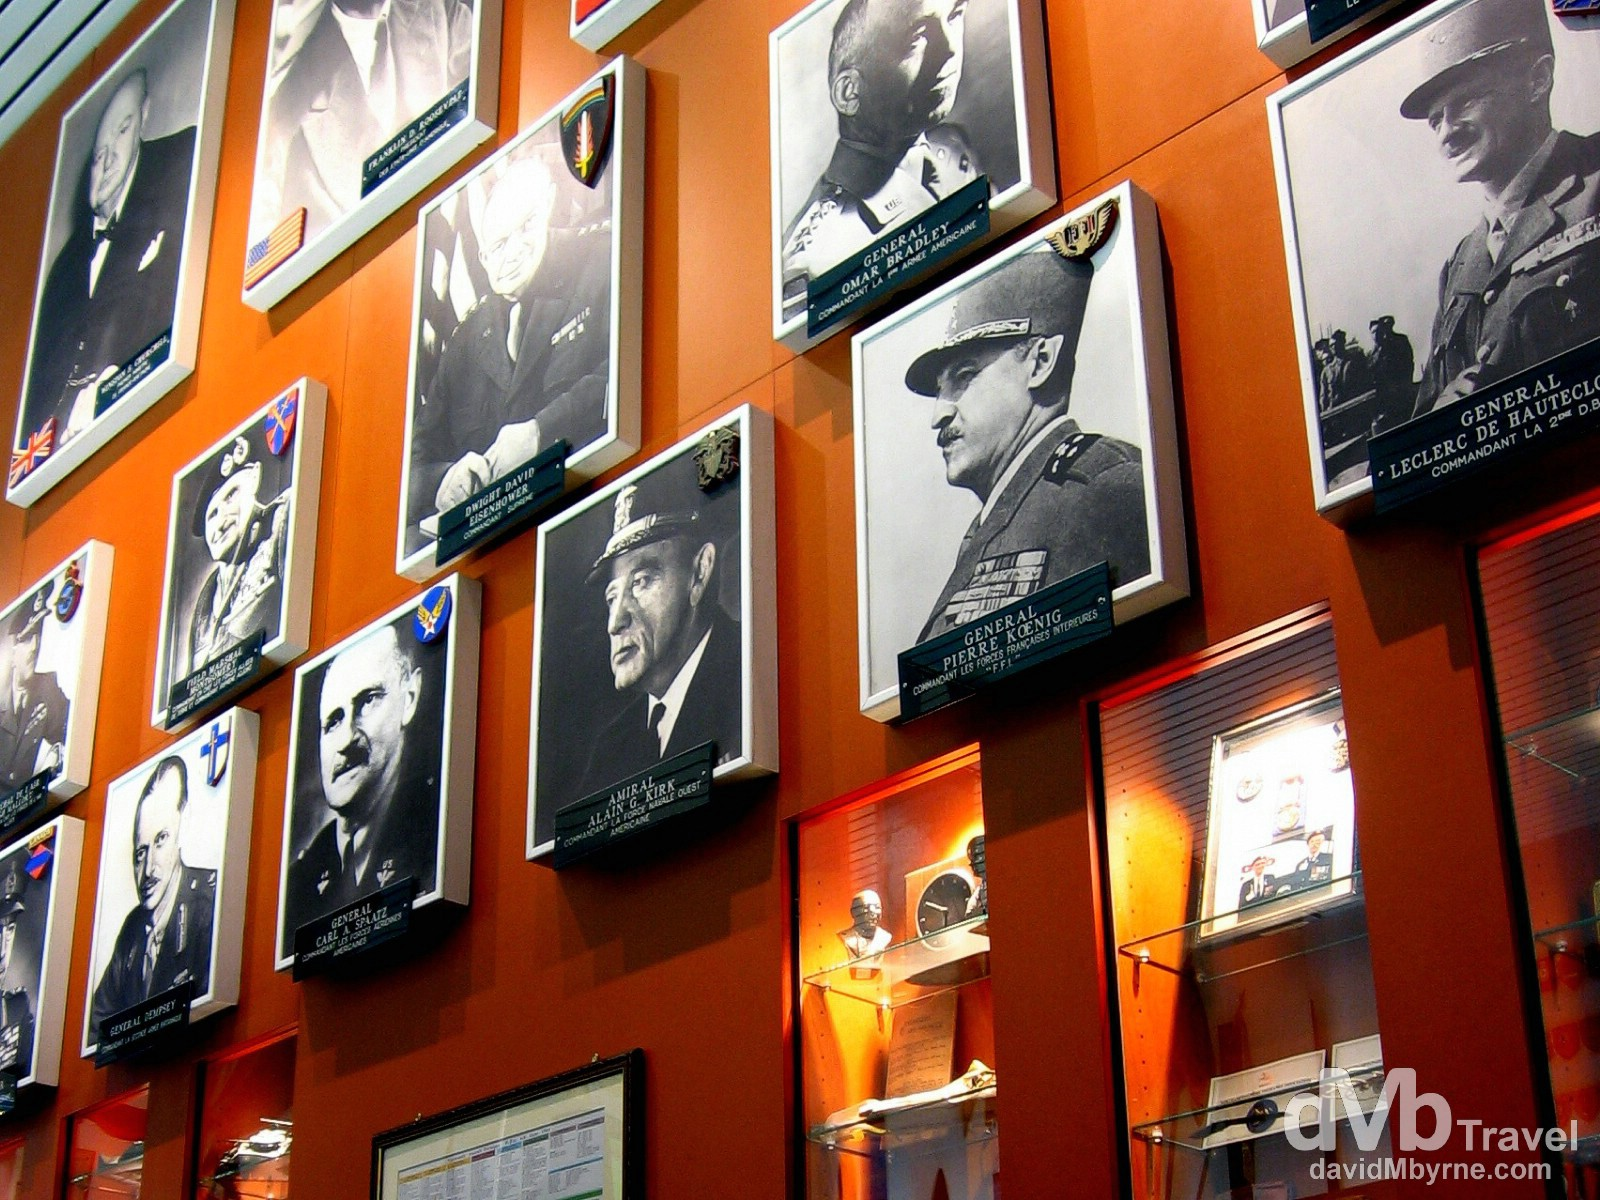 Allied military chiefs on display in the Arromanches Museum, Arromanches, Normandy, France. August 16th, 2007.